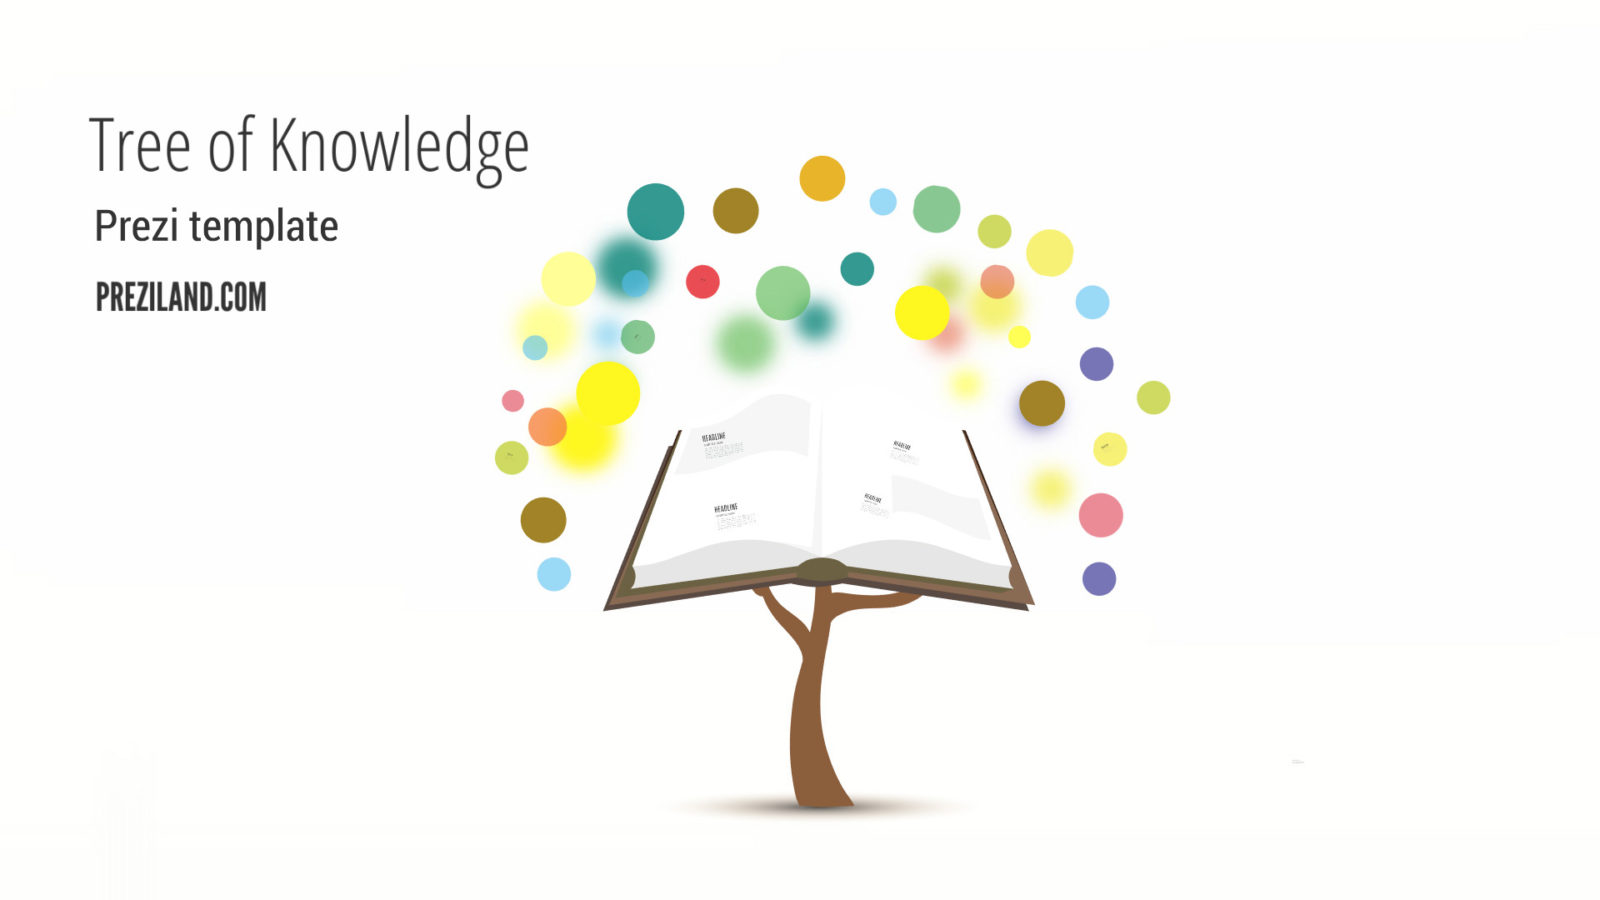 Tree-of-knowledge-prezi-template